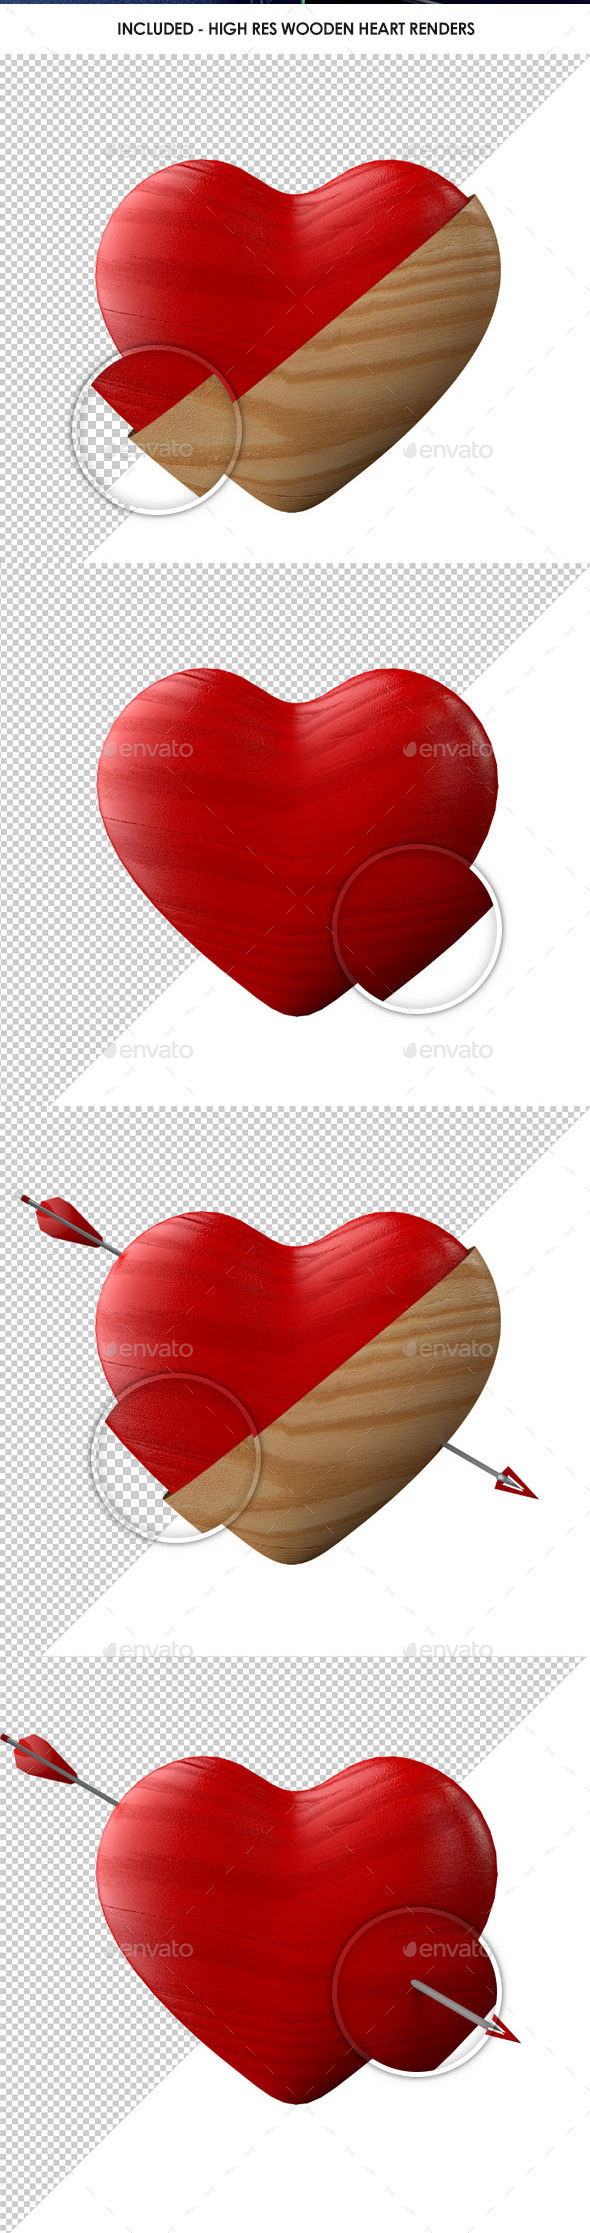 Retro Shabby Chic Wooden Heart Renders - Miscellaneous 3D Renders